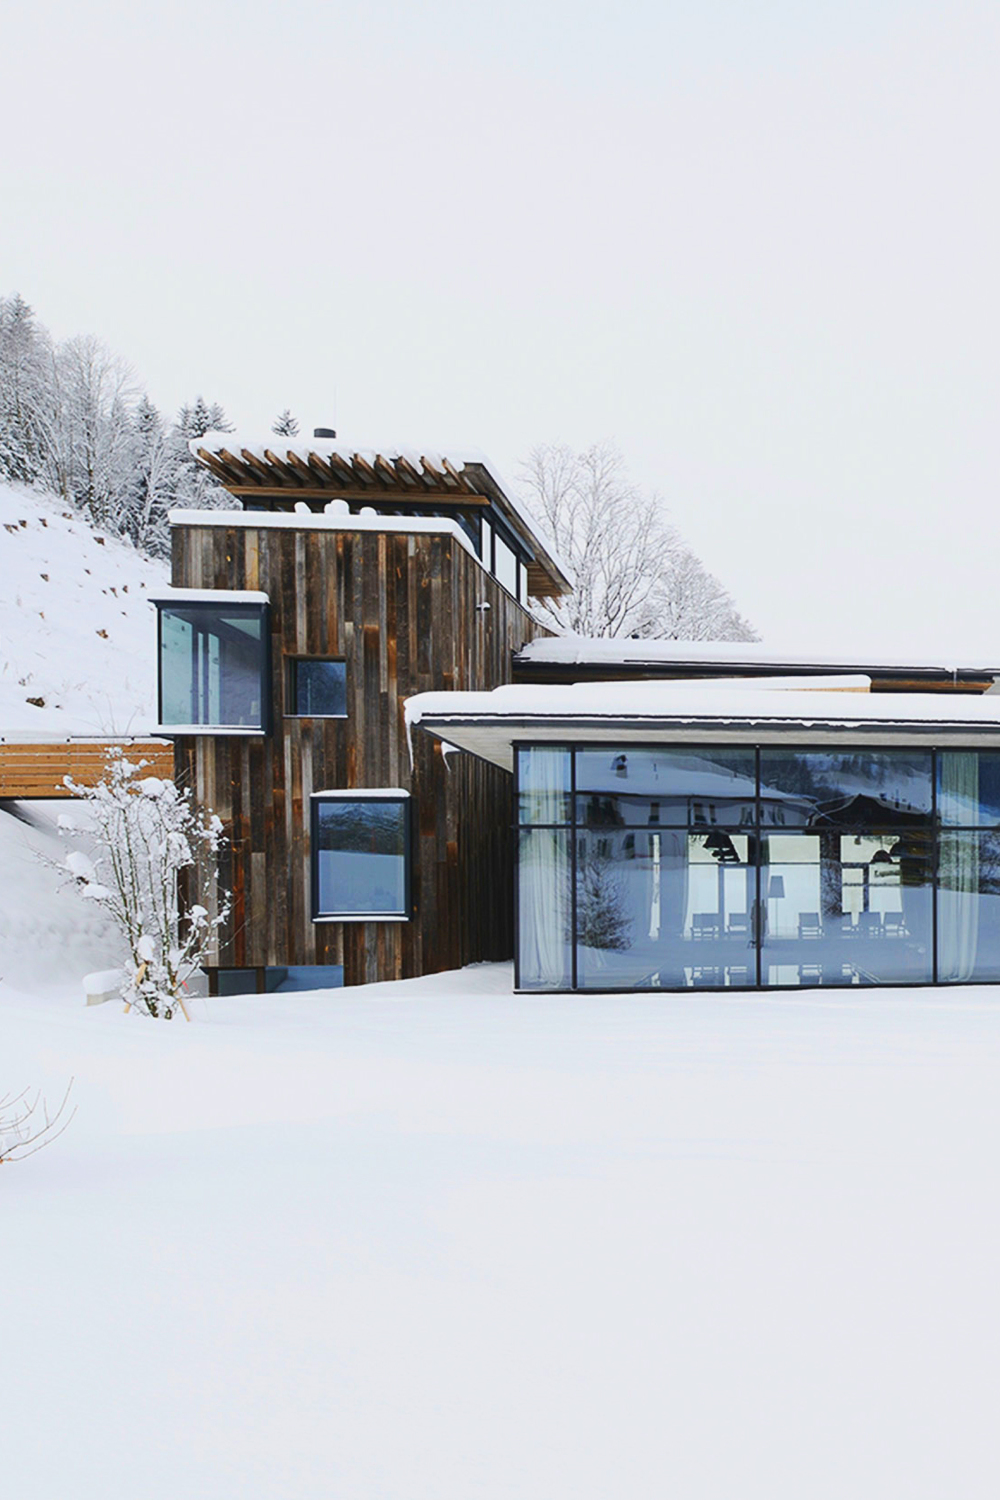 Wood and glass architecture in snow ITCHBAN.com